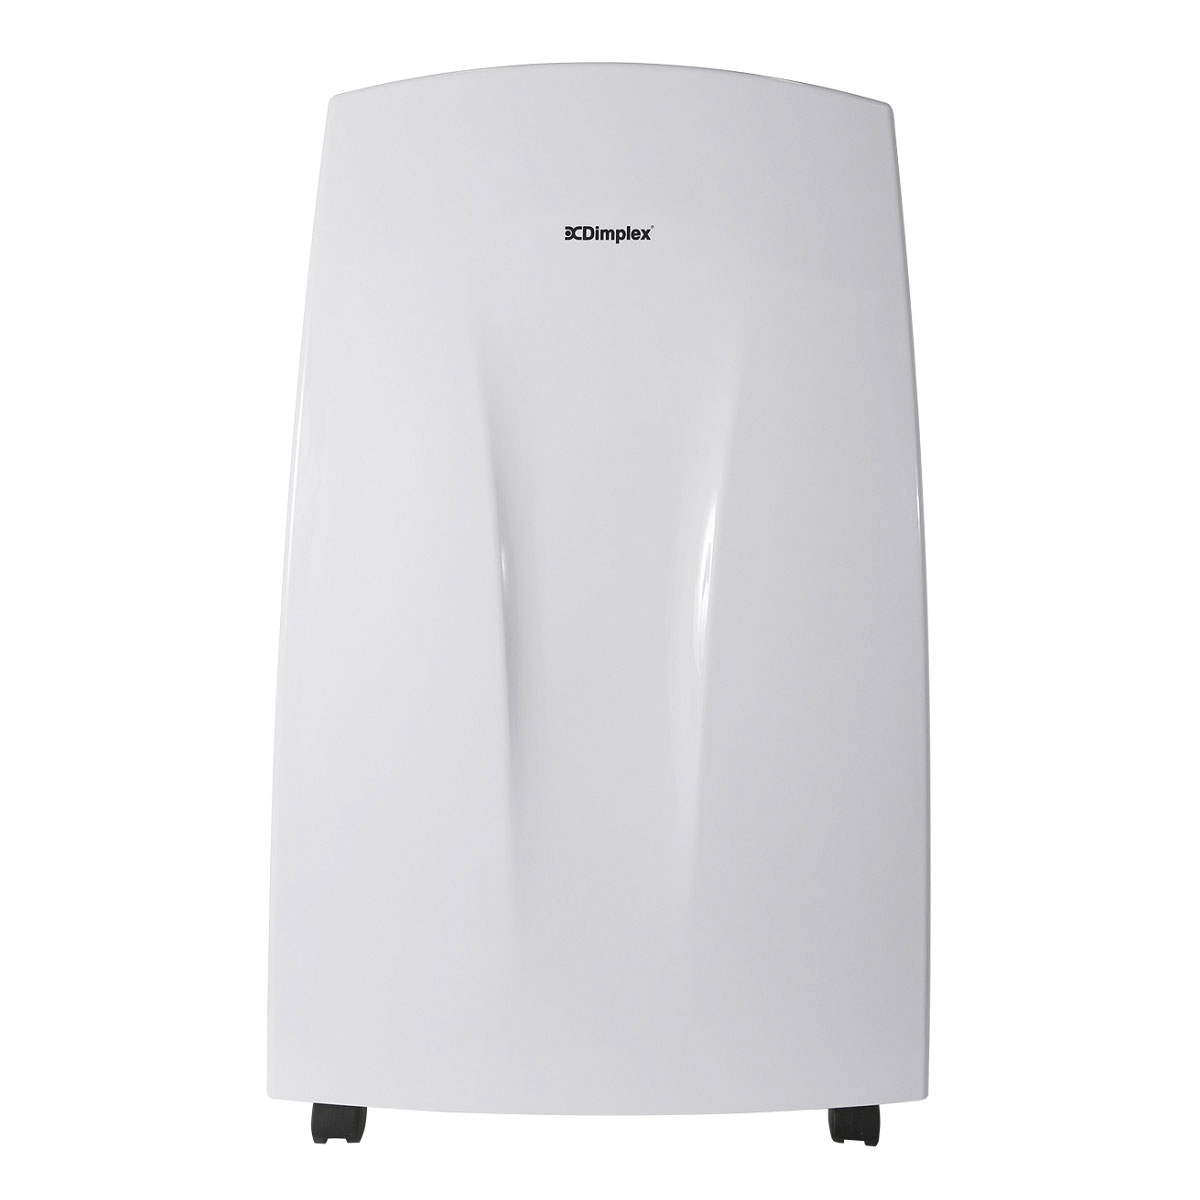 Dimplex Dc17 5kw Portable Air Conditioner With